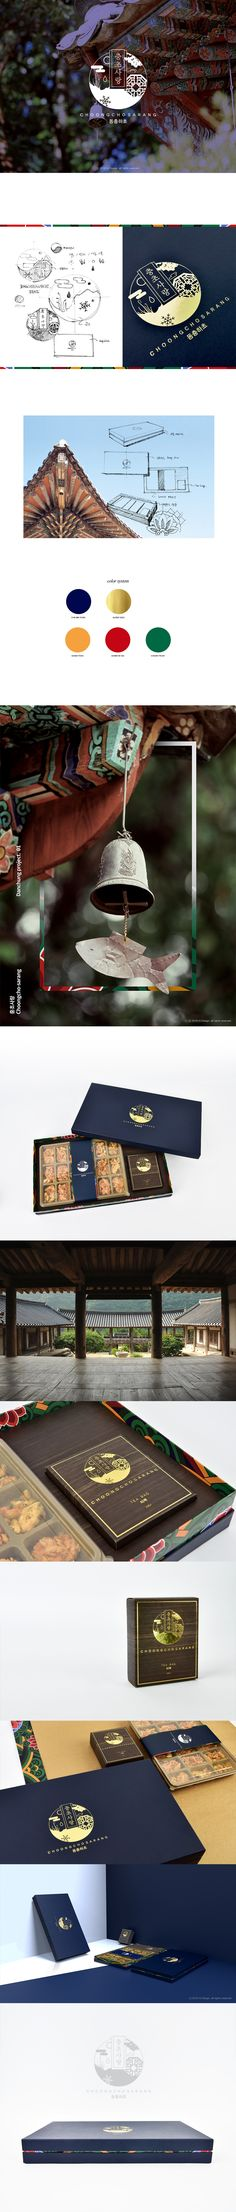 Korea Cordyceps package design on Behance